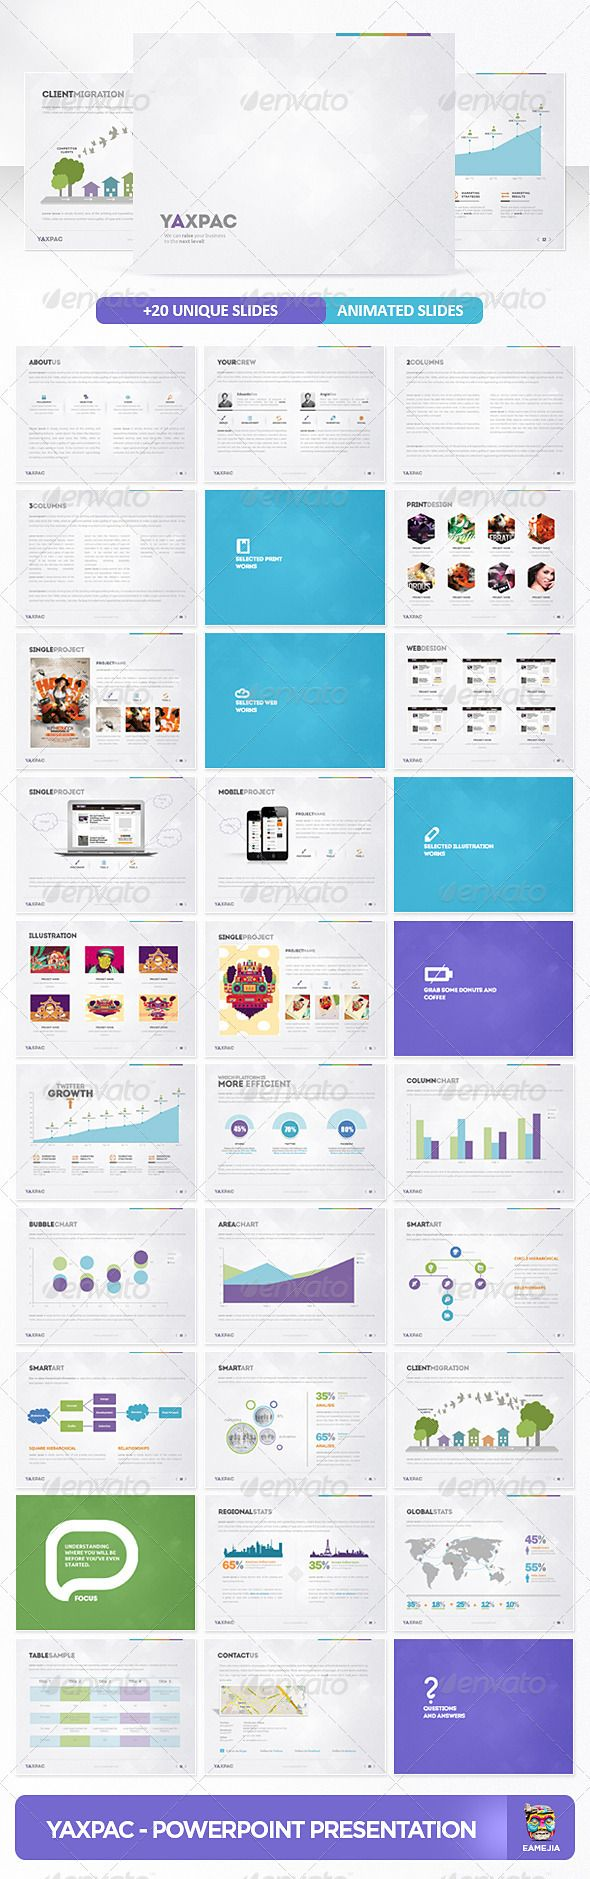 http://graphicriver.net/item/yaxpac-powerpoint-presentation-template/3370925?WT.ac=category_thumb_1=category_thumb_author=EAMejia